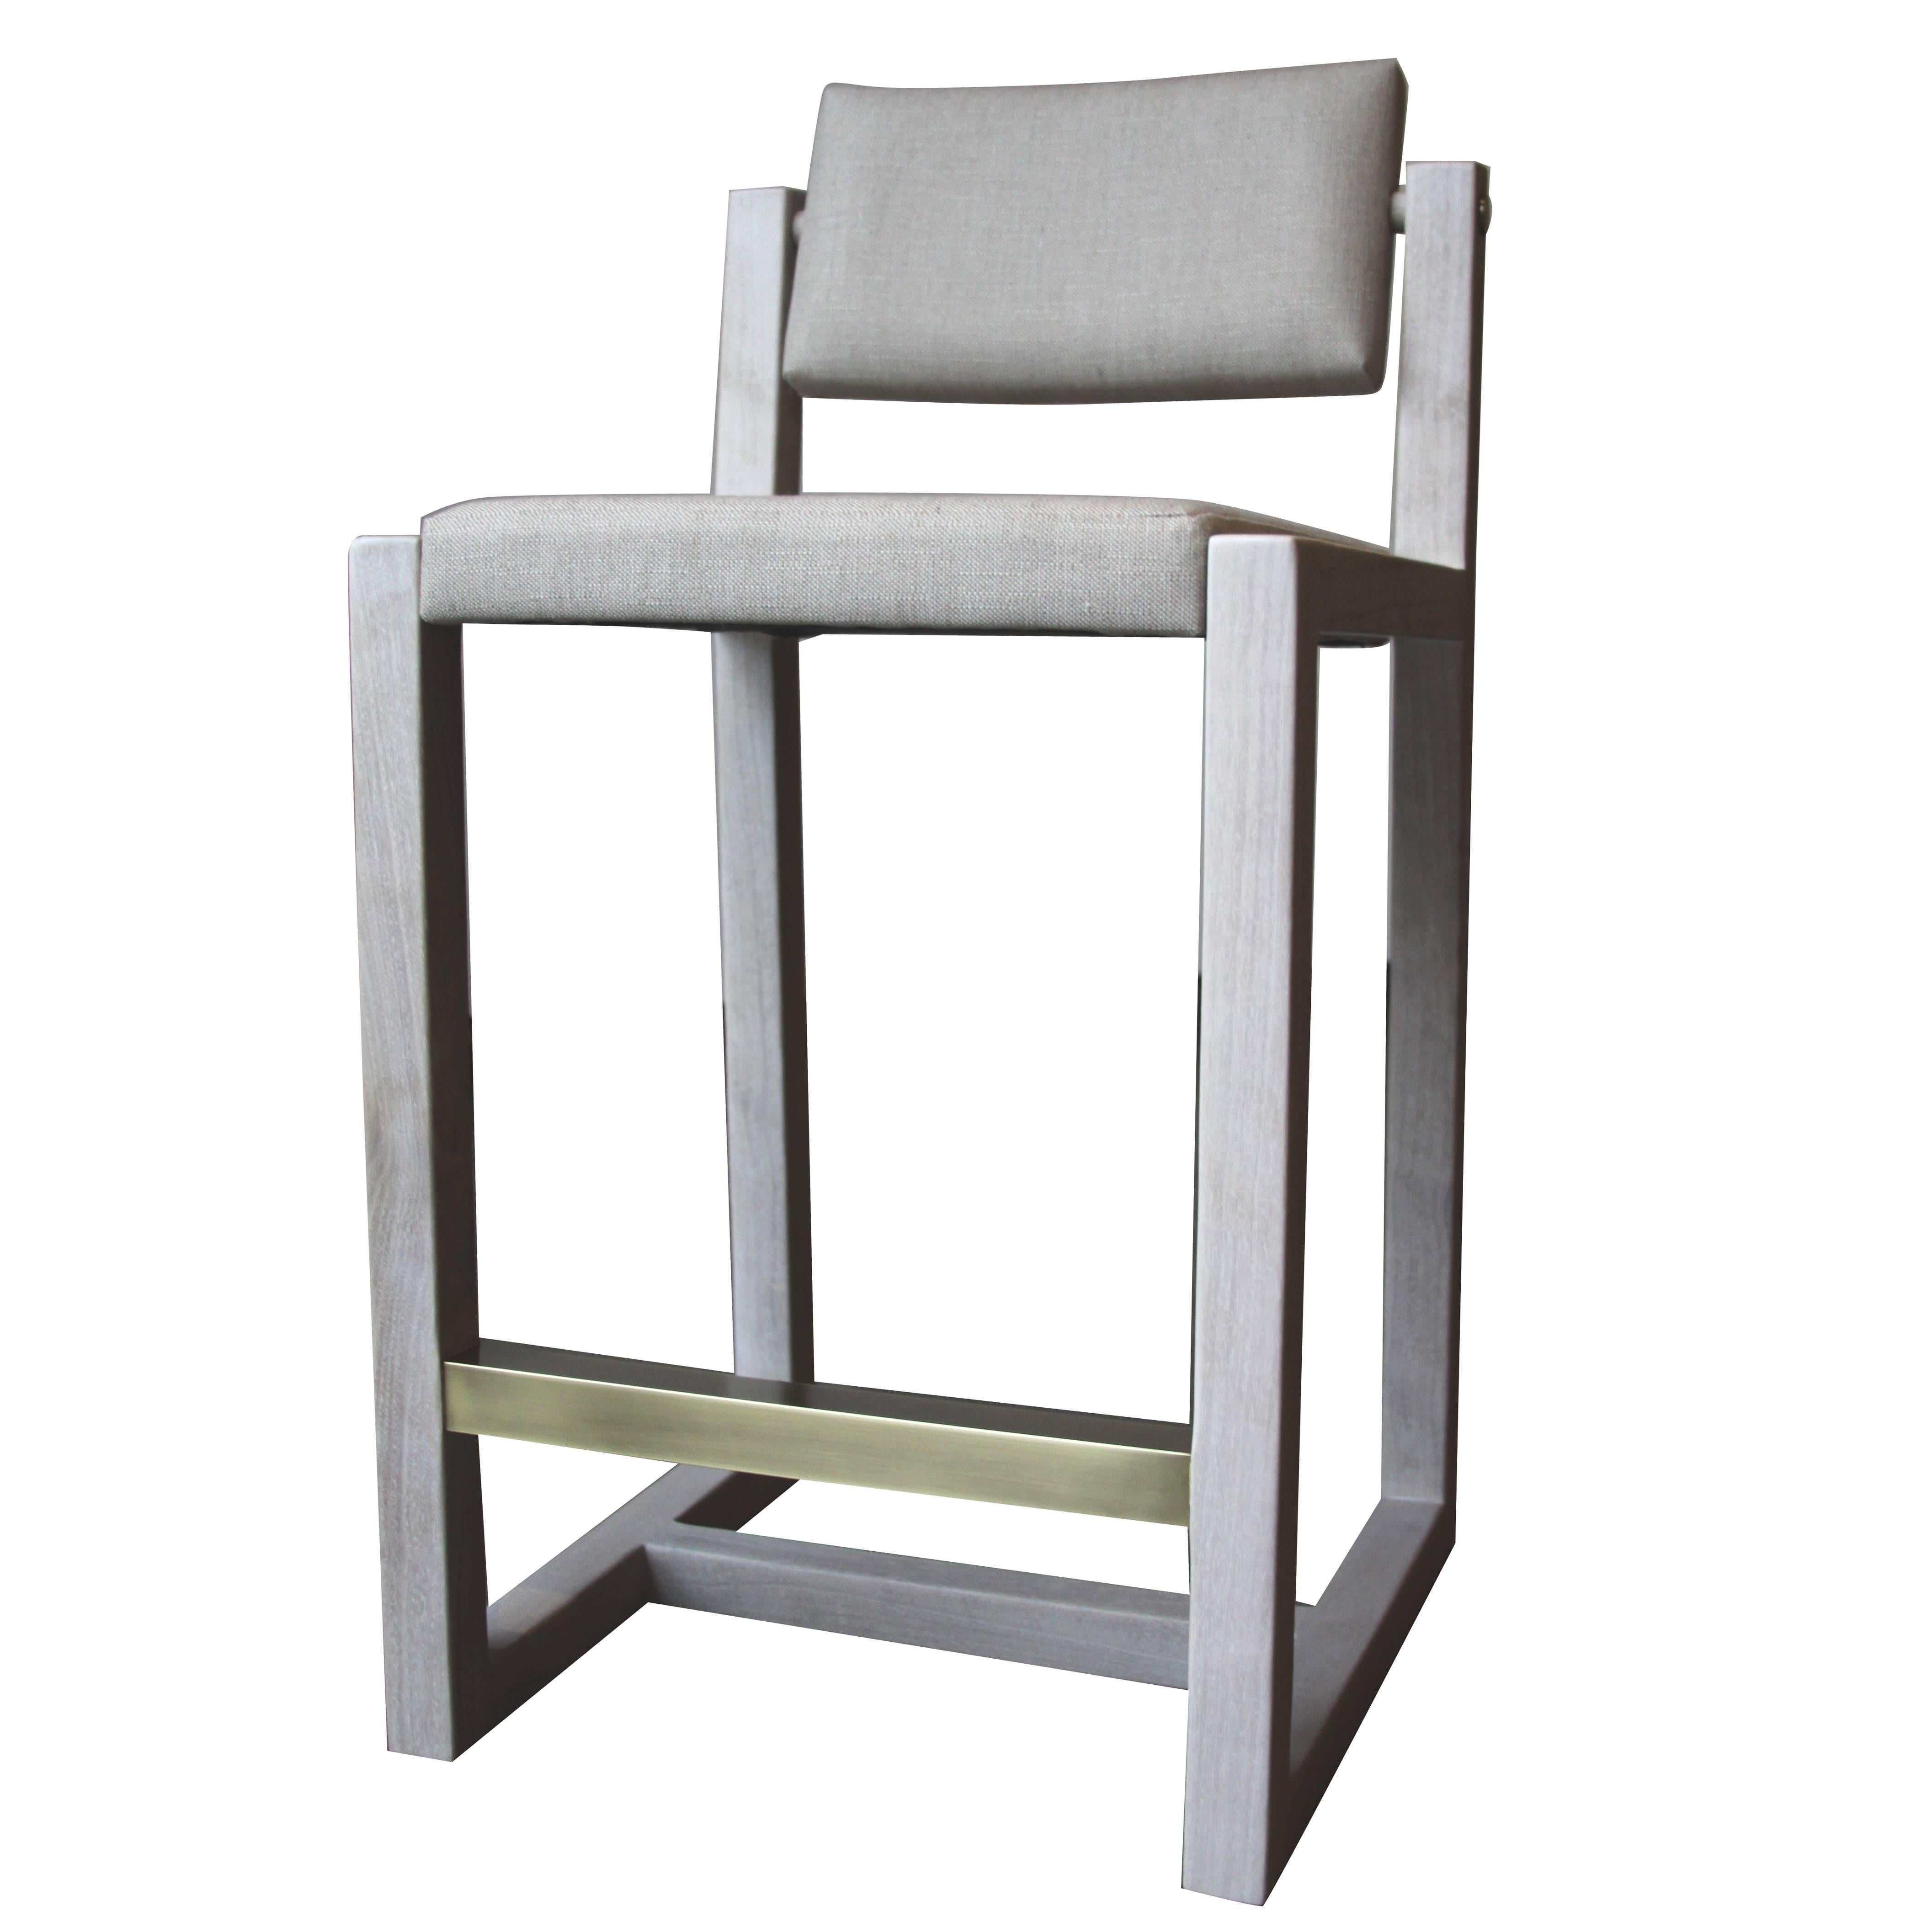 Terrific The Leather Strap Dining Chair By Thomas Hayes Studio At 1Stdibs Creativecarmelina Interior Chair Design Creativecarmelinacom